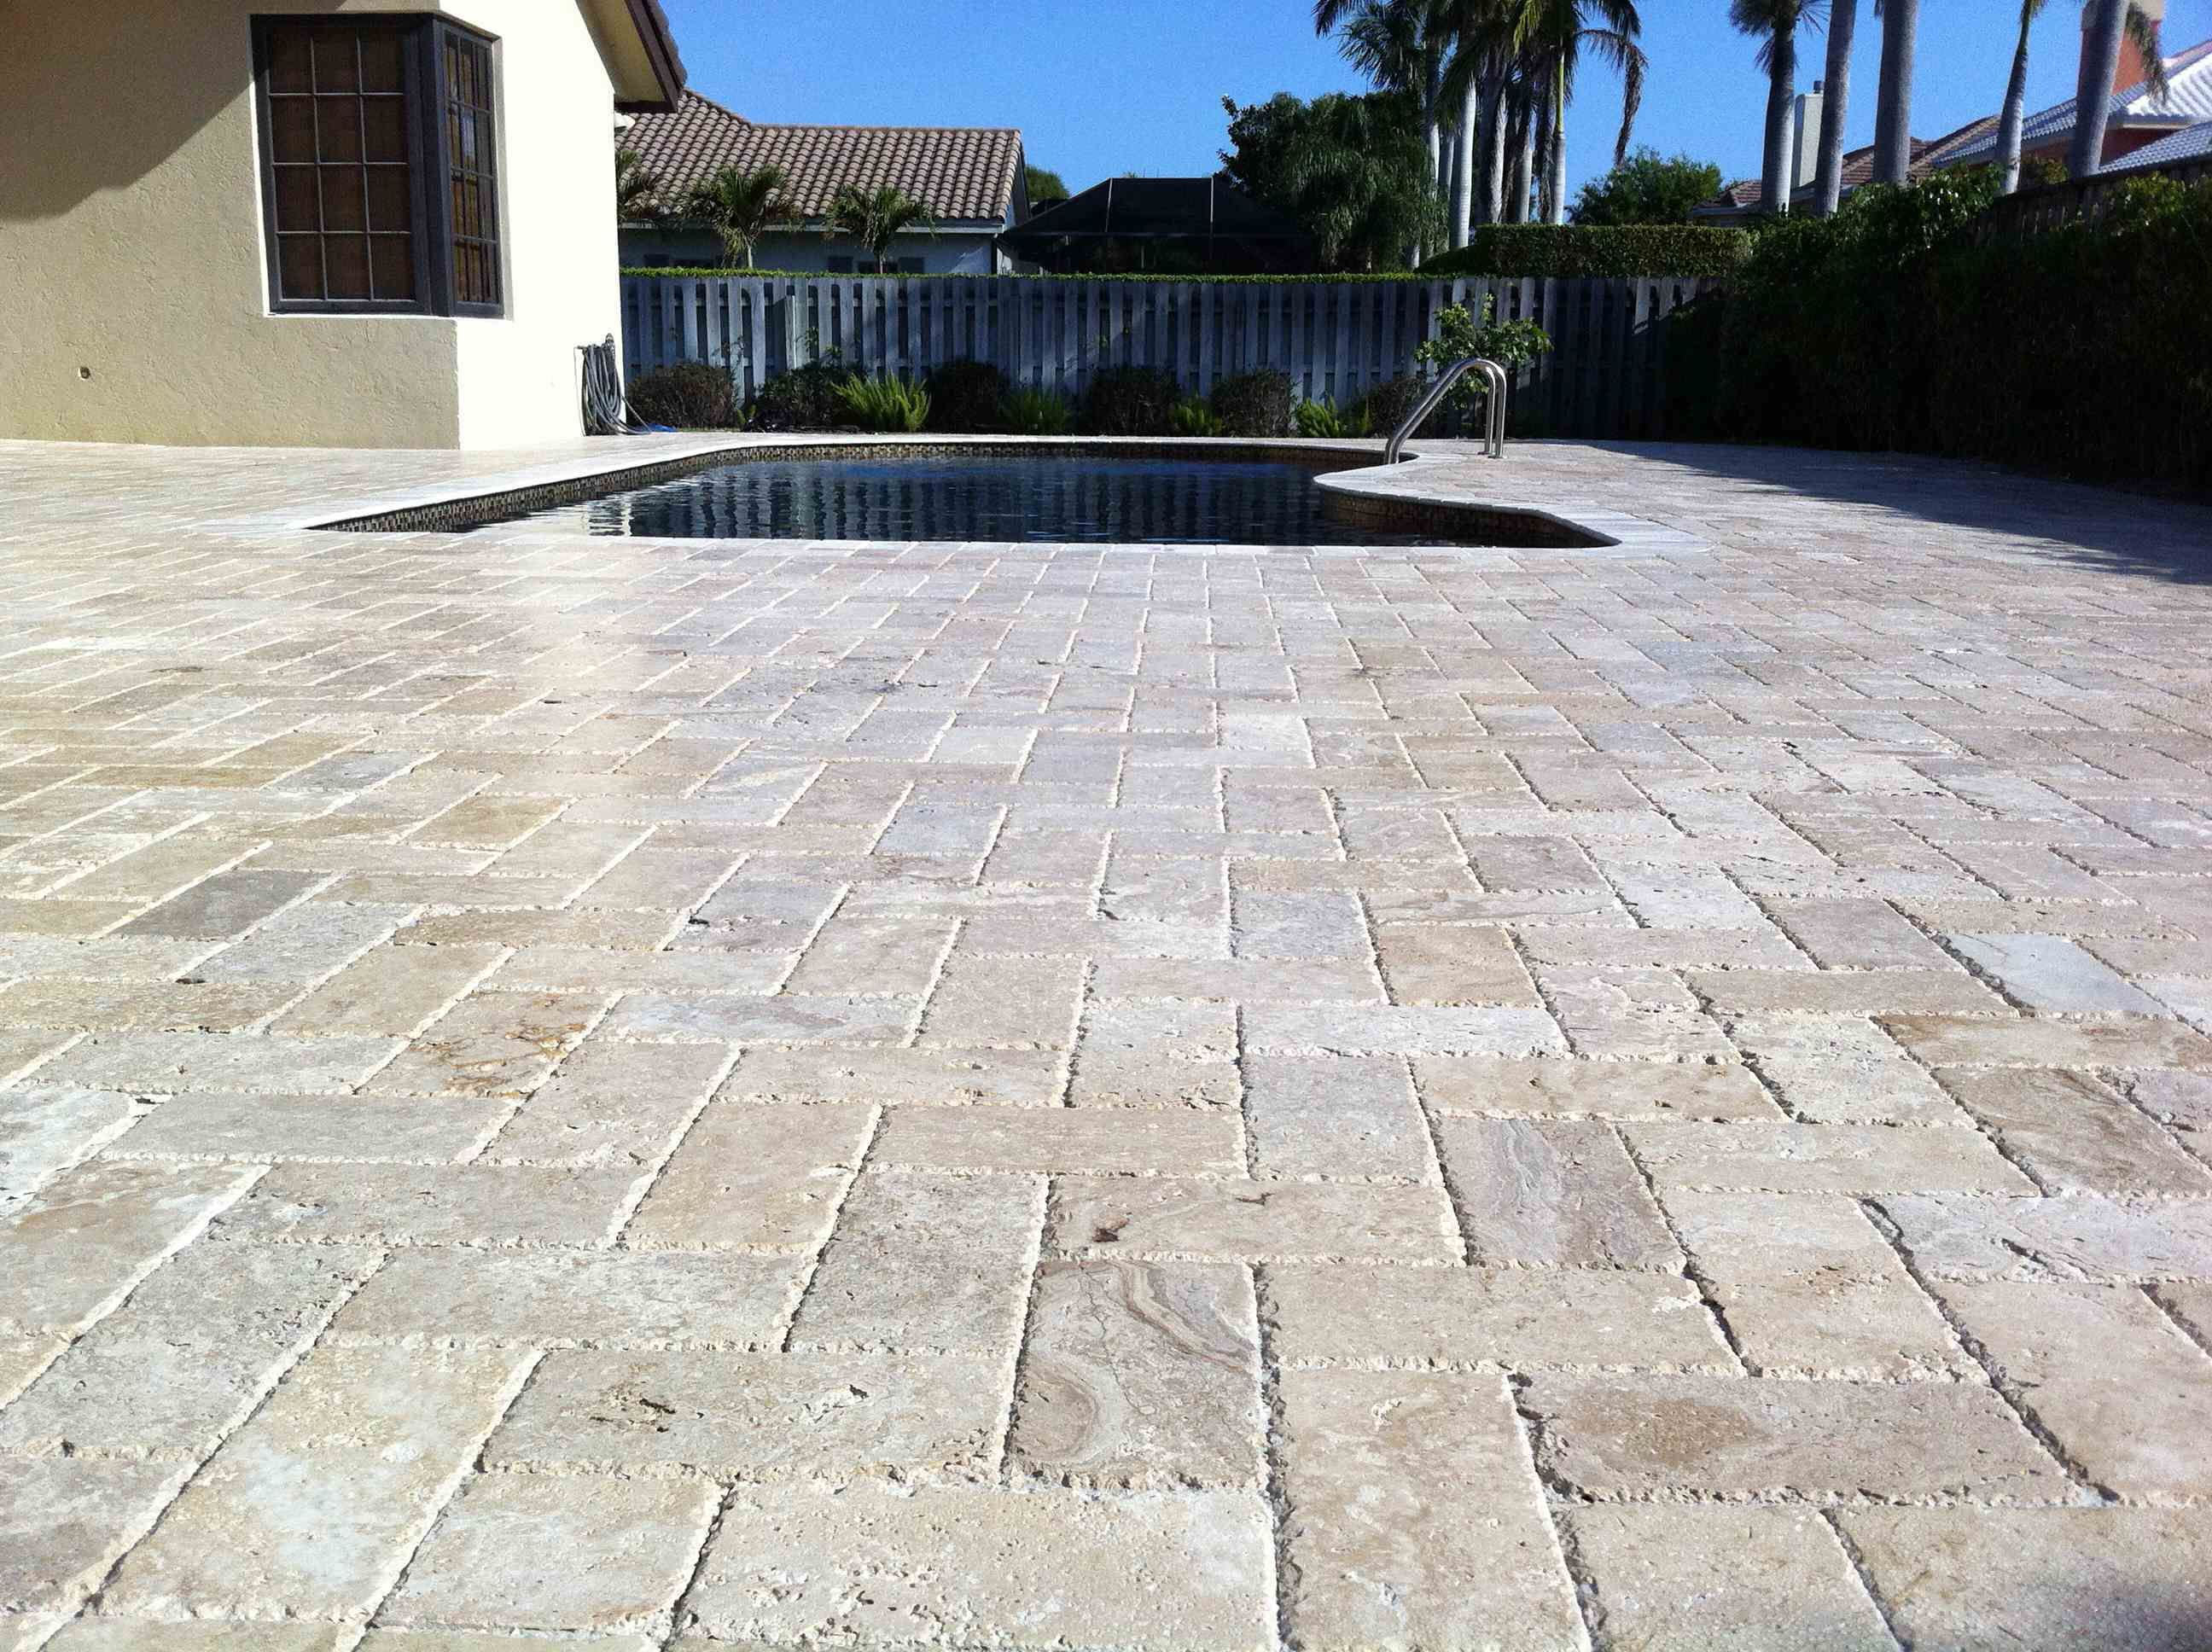 travertine pavers design ideas for patios | Pinterest is a ... on Travertine Patio Ideas id=41450